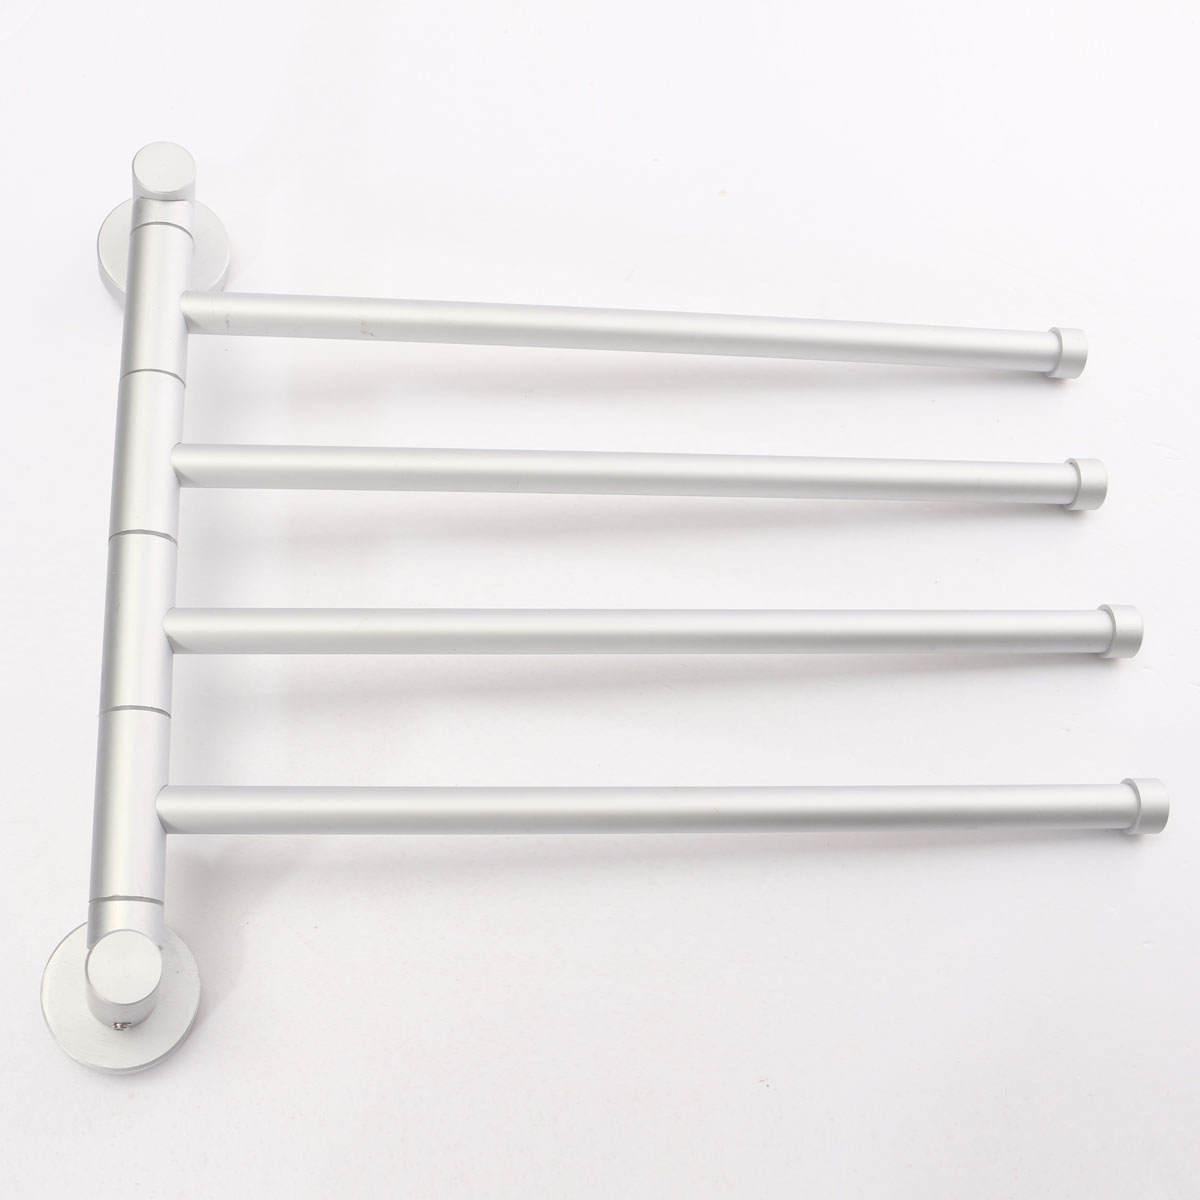 4 Swivel Bars Bathroom Aluminium Wall Towel Rack Holder Polished Hardware Storage Shelf Hotel Home Bathroom Decor Wholesale(China (Mainland))